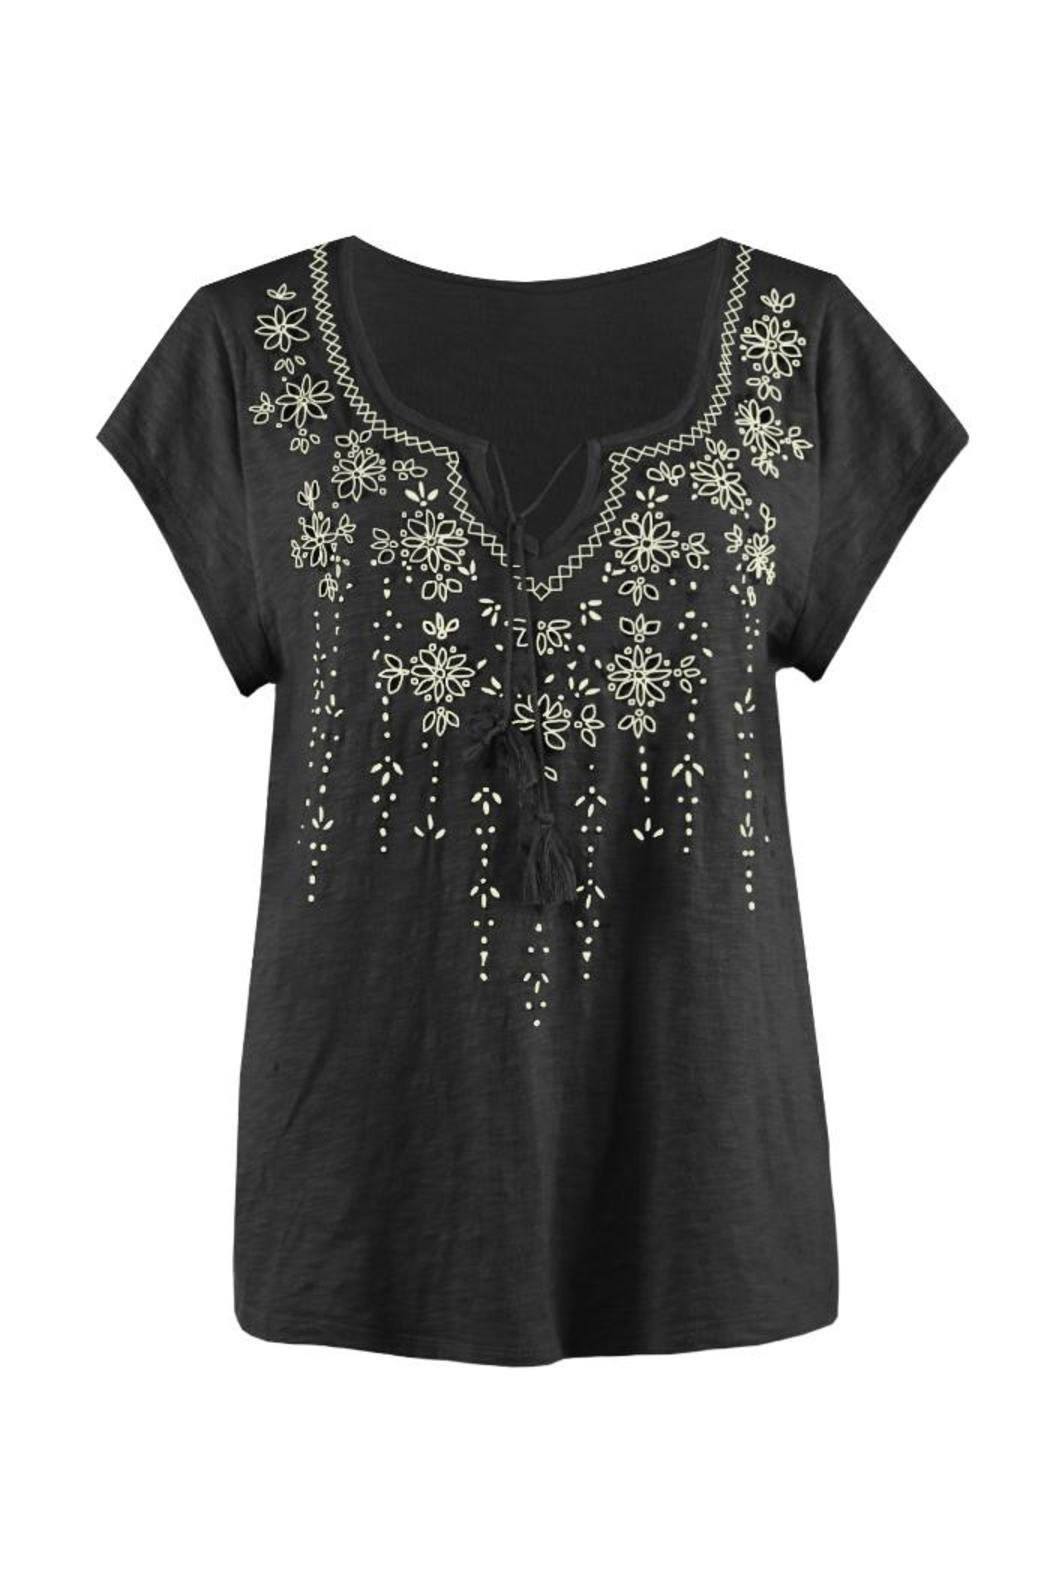 Dex Hippie Embroidered Top from Long Island by InMotion ...